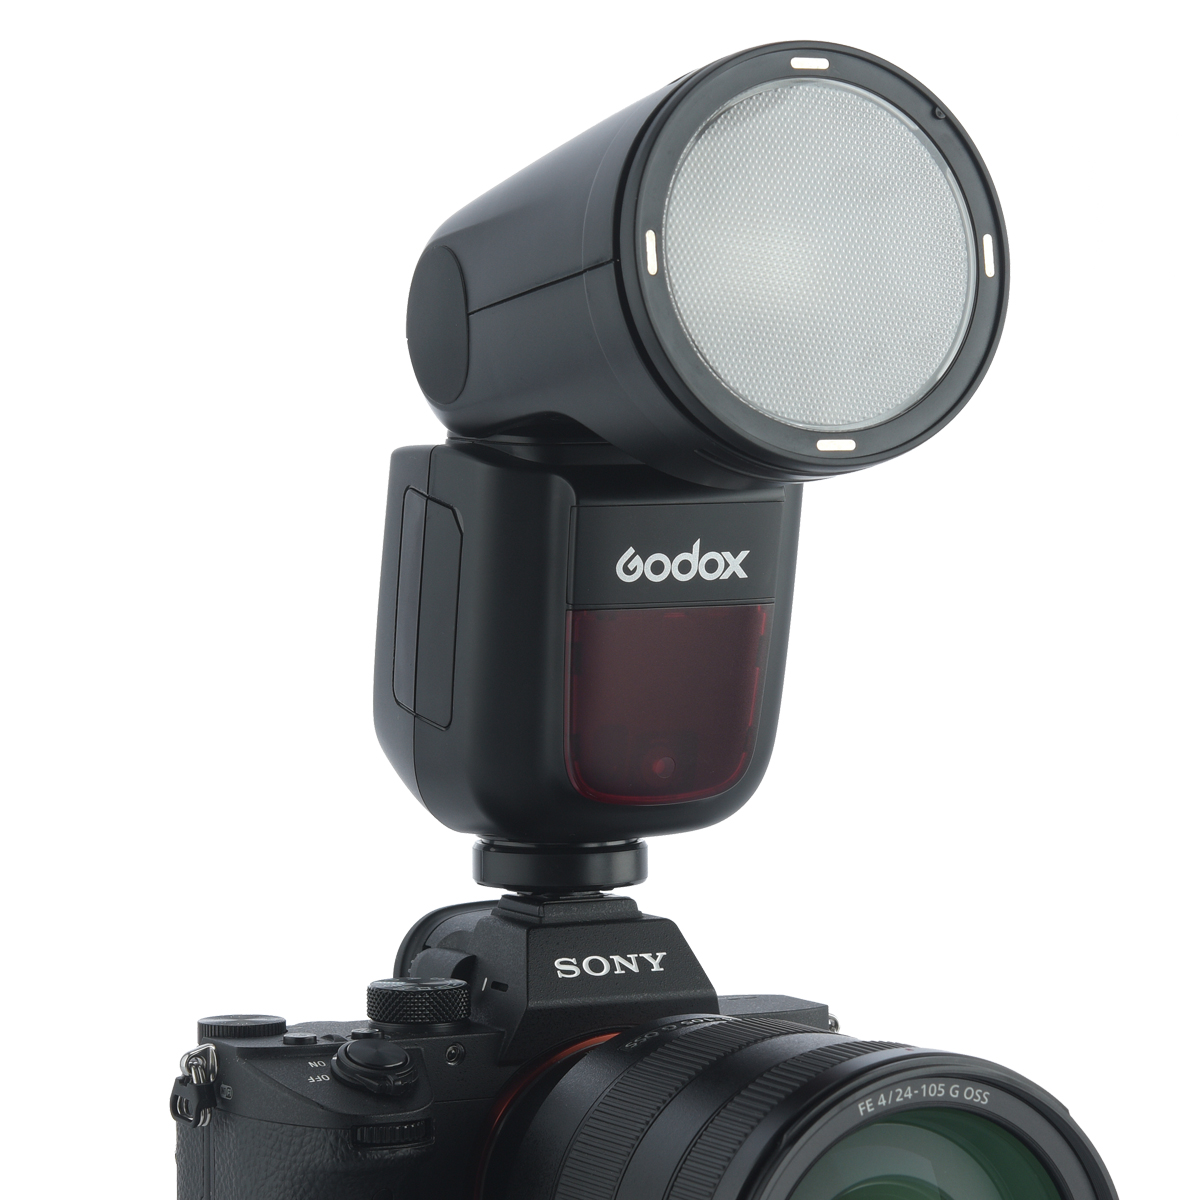 In Stock Godox <strong>V1</strong> on camera Flash V1C TTL <strong>1</strong>/8000 HSS battery Speedlite Flash For all brands camera